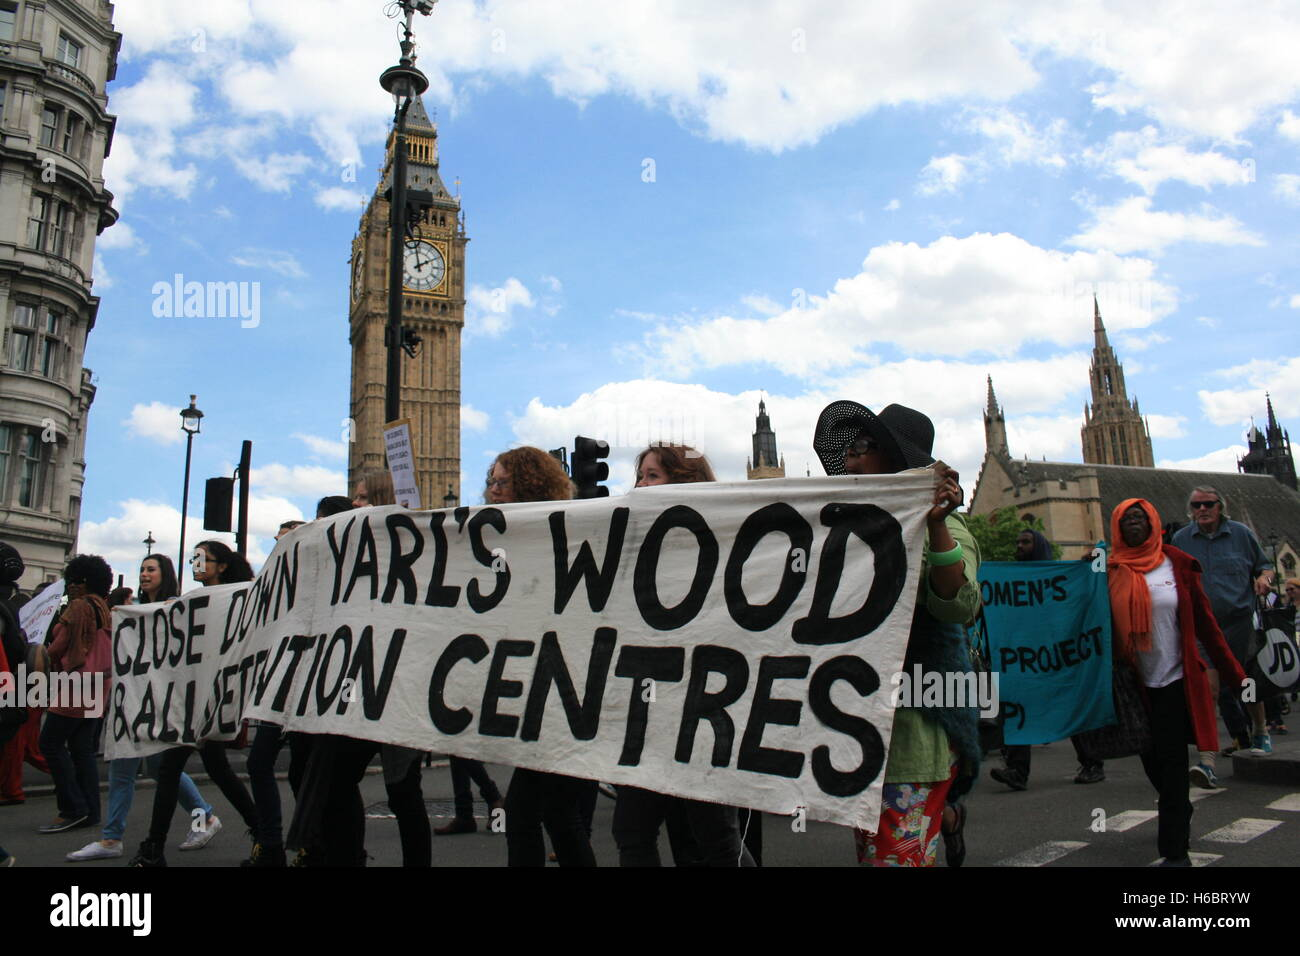 Campaigners for the closure of Yarls Wood Immigration Removal Centre and other detention centres across the world, - Stock Image